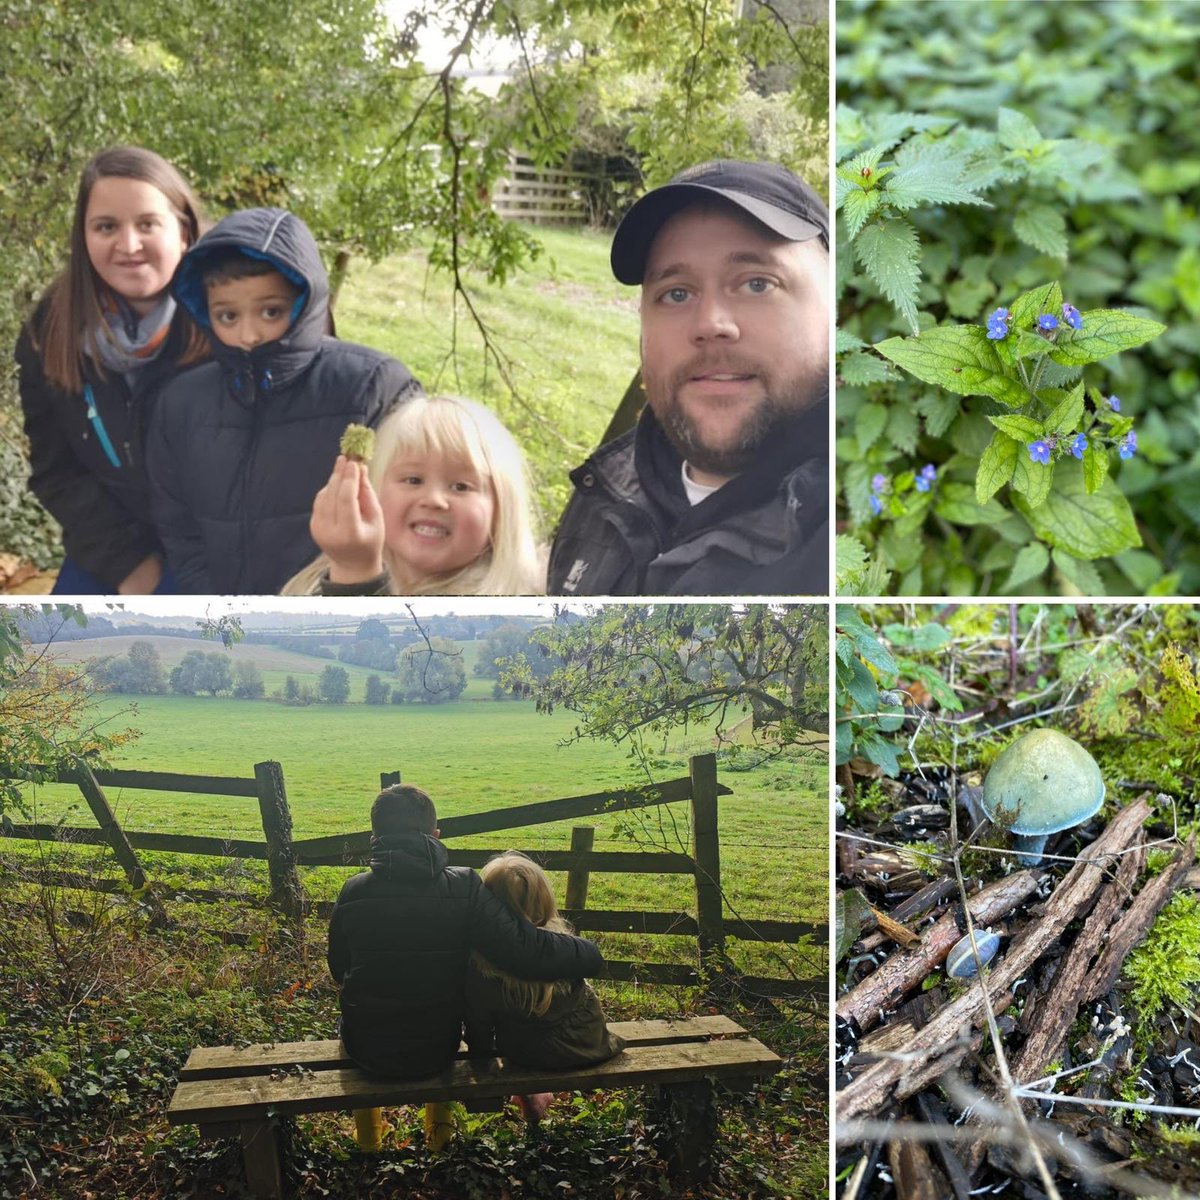 Our Head Chef @lewisdehaan2018 and his family have completed a 5 mile walk for Liam and @beadscourageuk . The BIG question is whether you took any of your delicious flapjacks for energy? #school #chef #family #children #walk #countryside #fields #woods #railway #flowers #leaves https://t.co/xada7JYN50